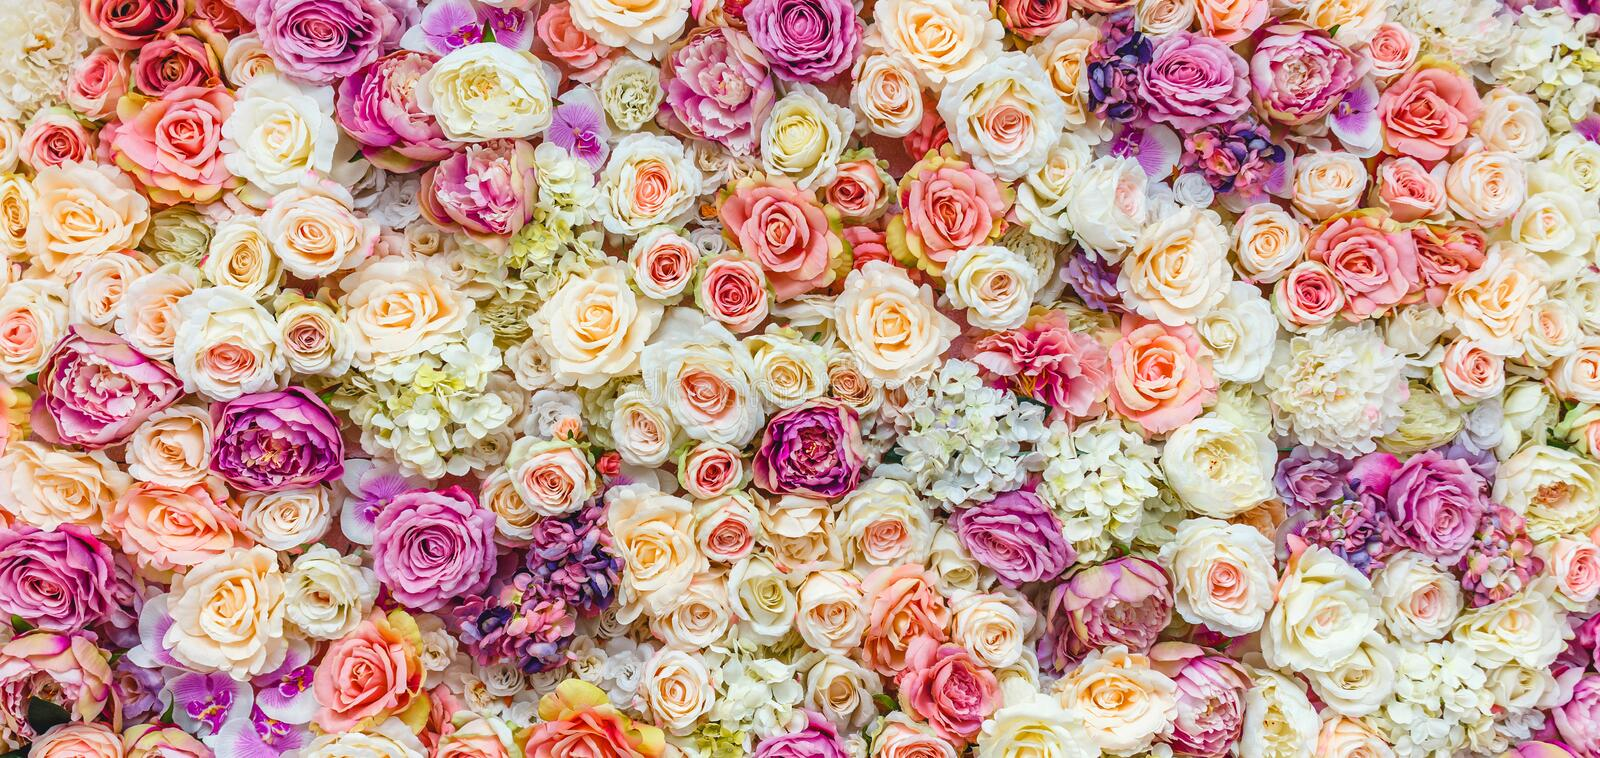 Flowers wall background with amazing red and white roses, Wedding decoration, hand made. Toning stock photography